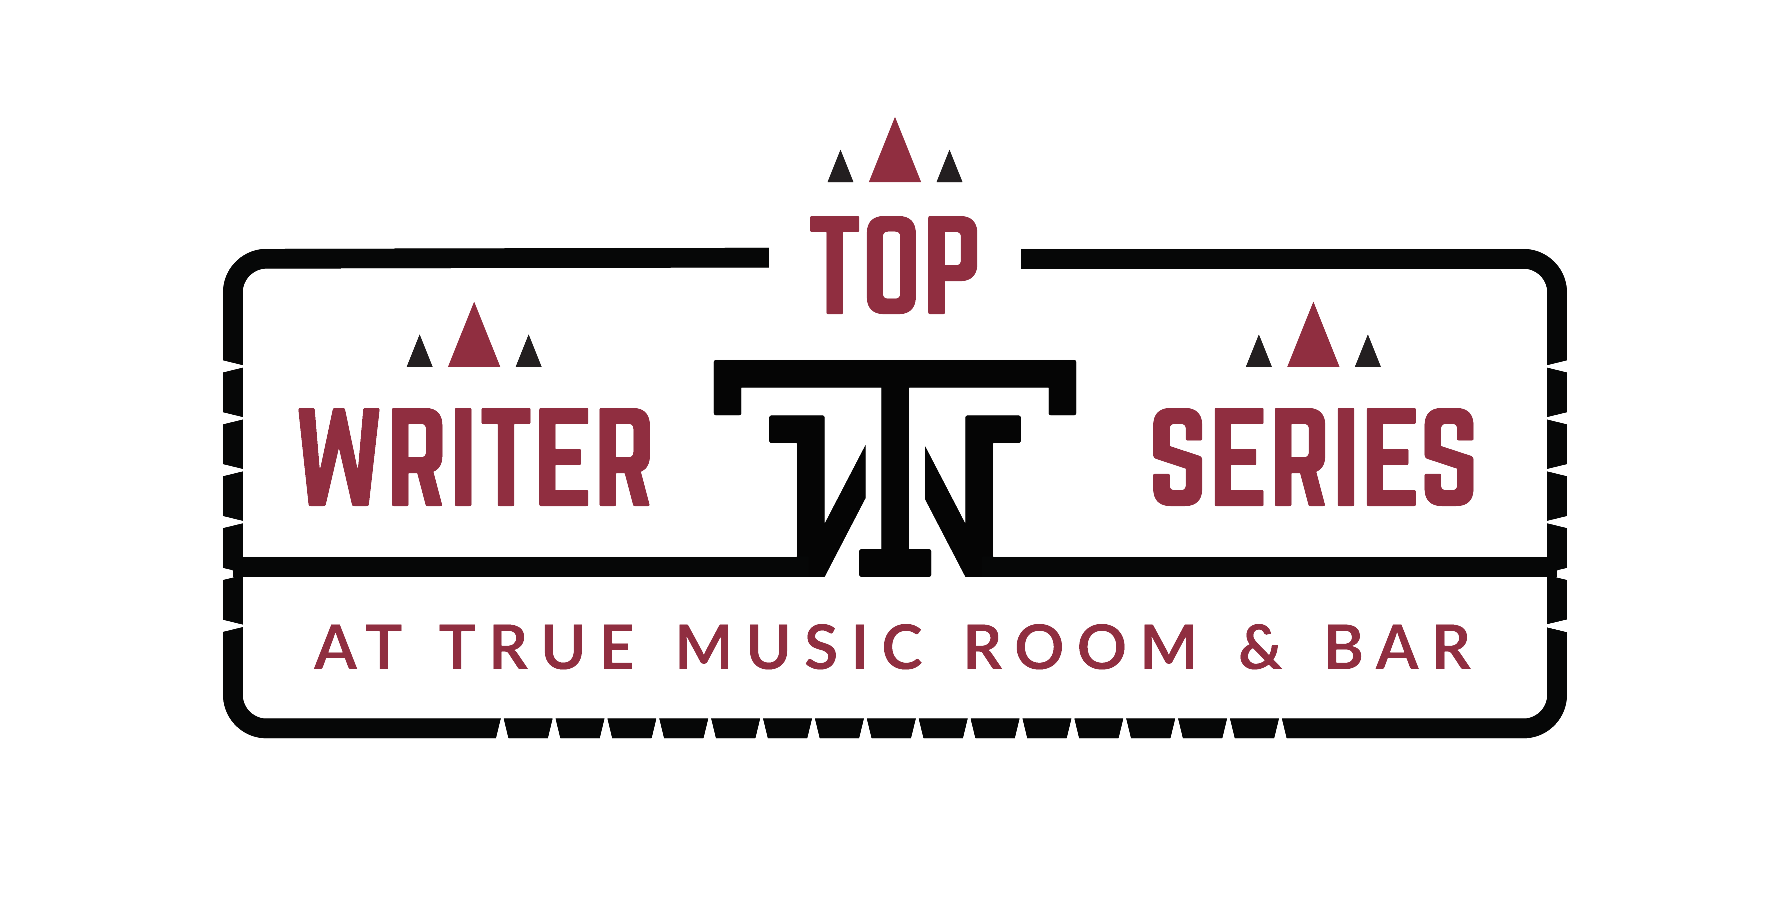 Top Writer Series Logo.png